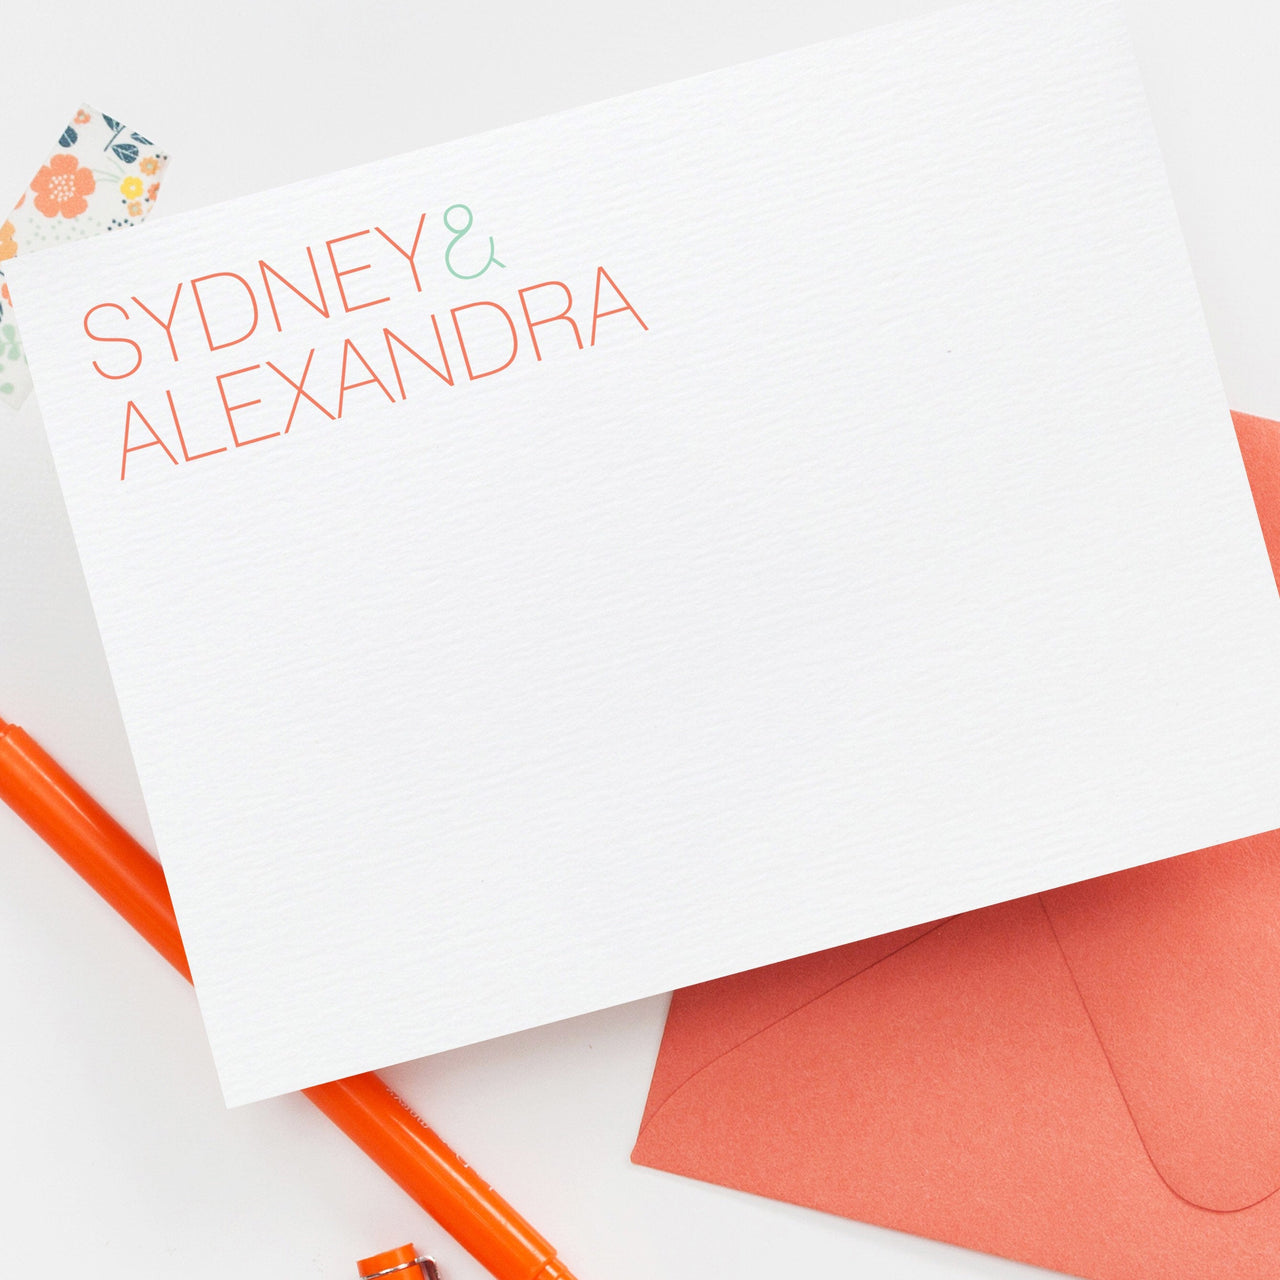 Sibling Stationery, Couples Stationery, wedding stationery, kids personalized stationery, family stationery, Custom Stationery, 006NC - Joy Creative Shop